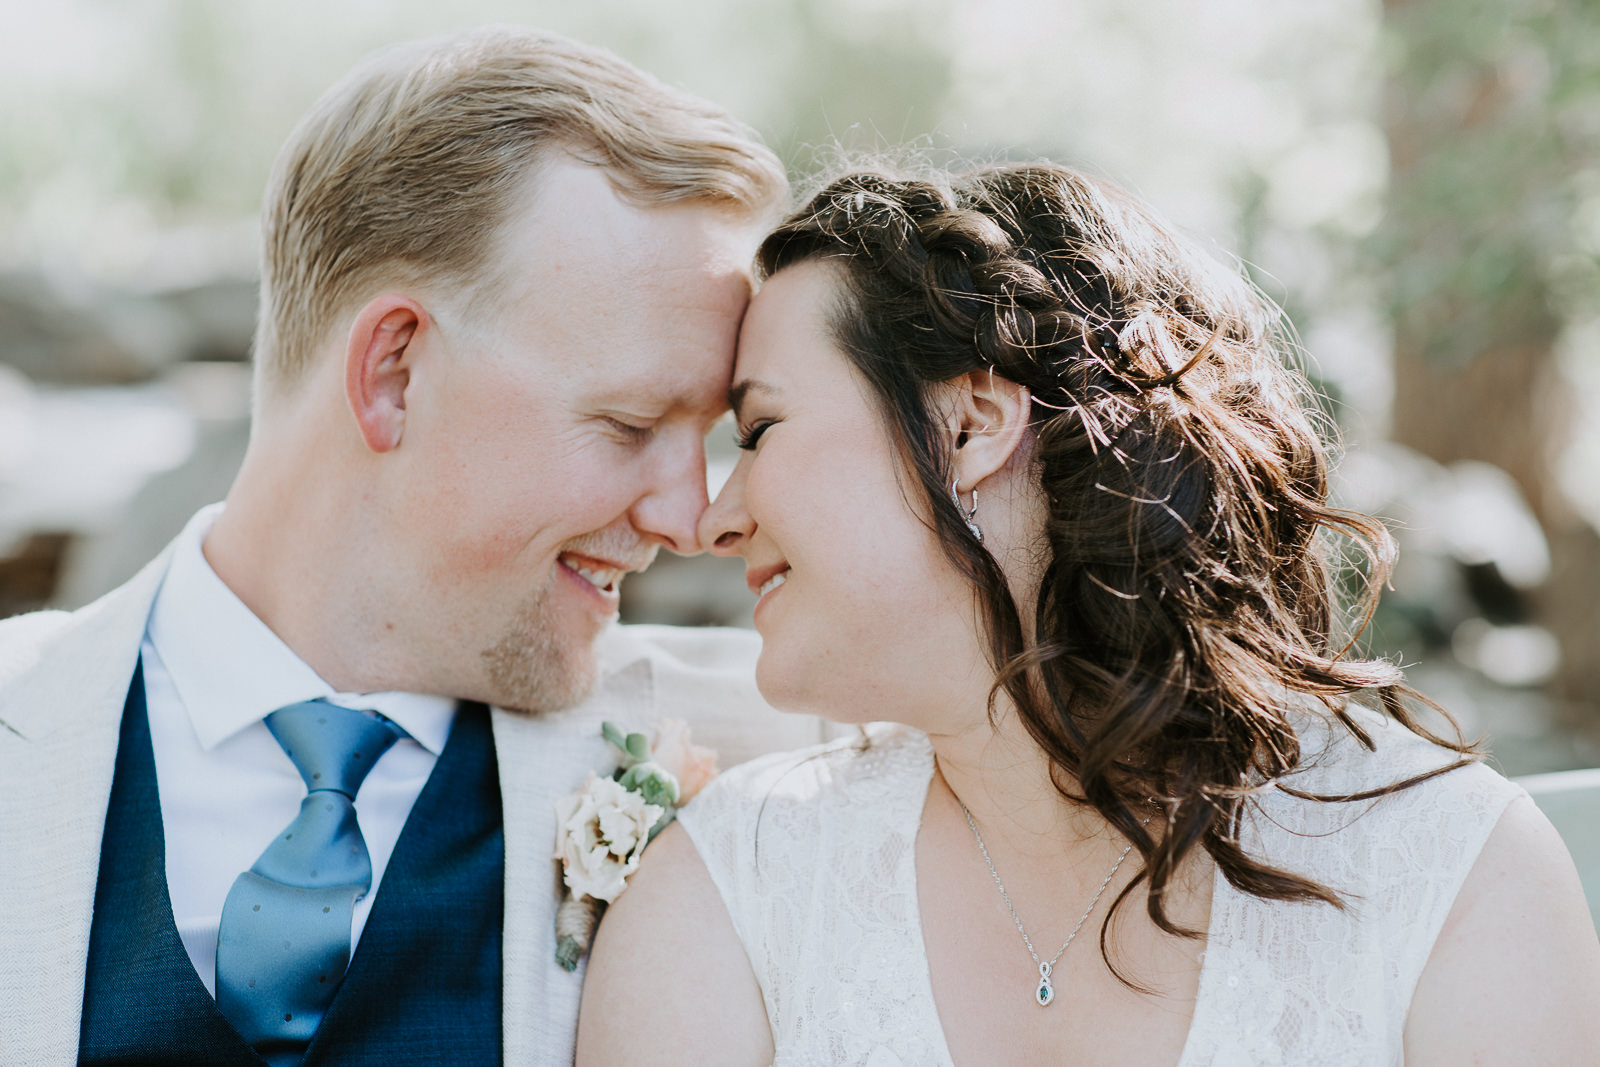 Close up of married couple nose to nose on wedding day